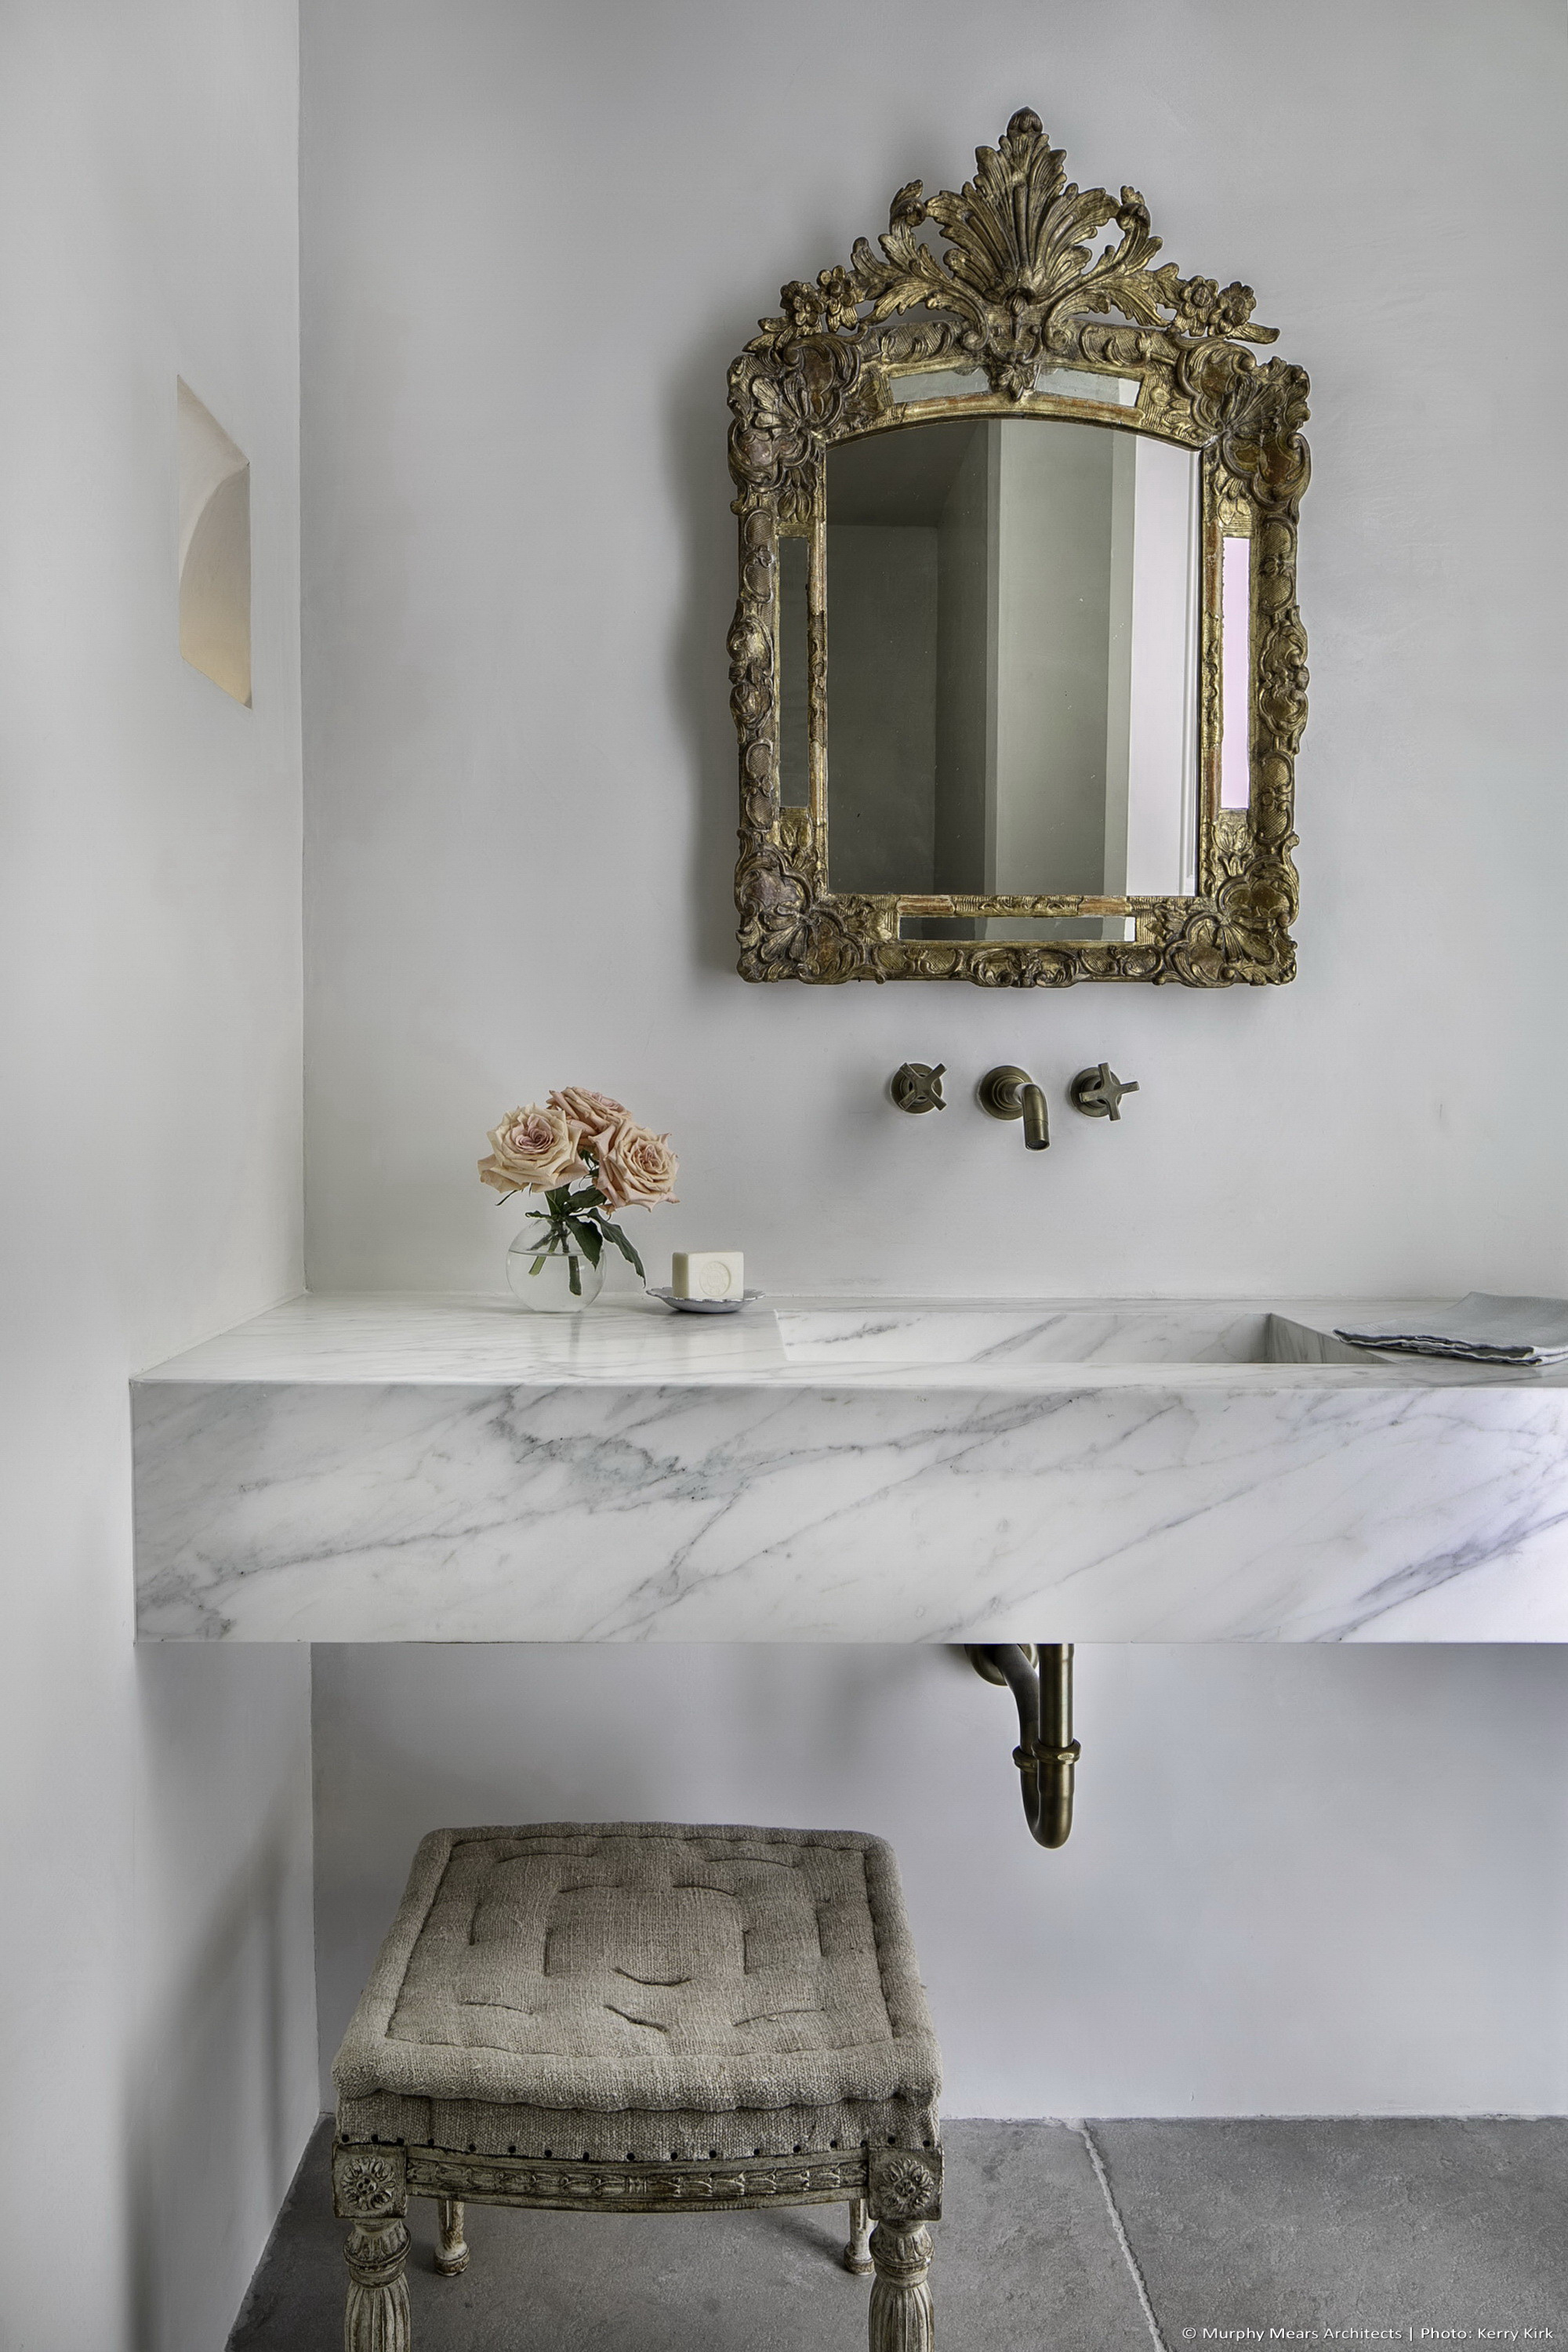 Powder room with marble sink and plaster finishes.